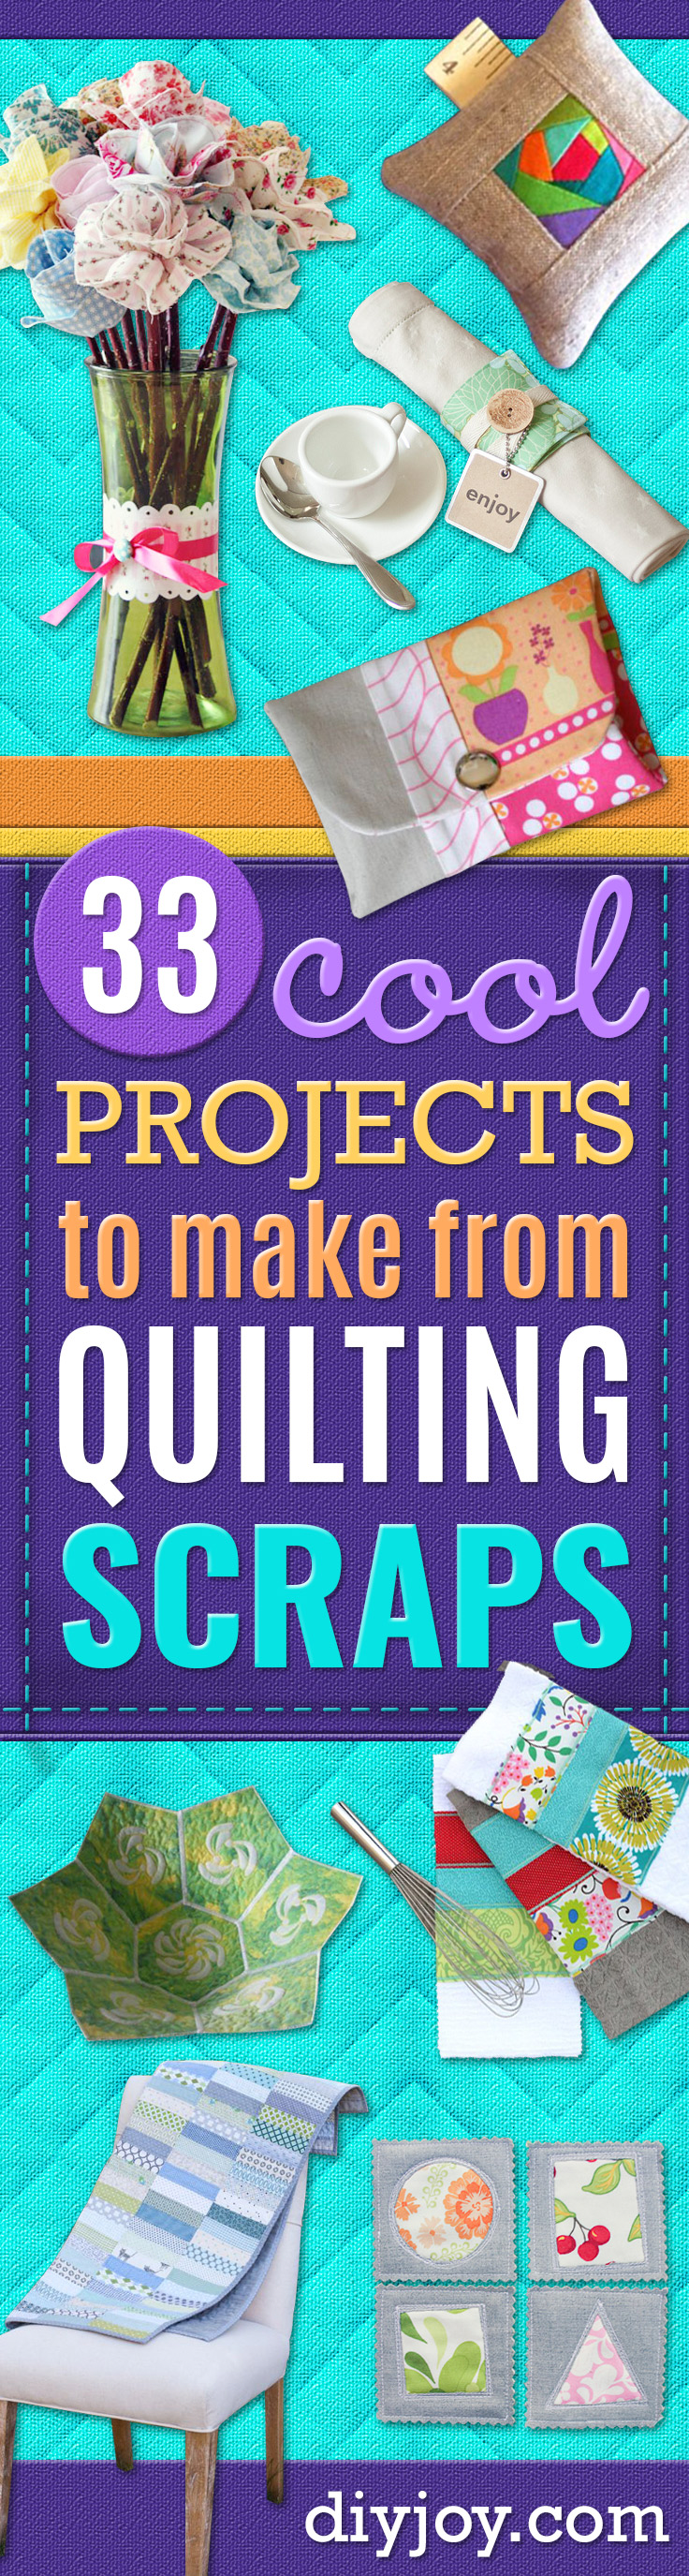 Best Quilting and Fabric Scraps Projects - Easy Ideas for Making DIY Home Decor, Homemade Gifts, Wall Art , Kitchen Accessories, Clothes and Fashion from Leftover Fabric Scrap and Quilt Pieces - Cute Do It Yourself Ideas for Birthday, Christmas, Baby and Friends http://diyjoy.com/quilting-scraps-projects